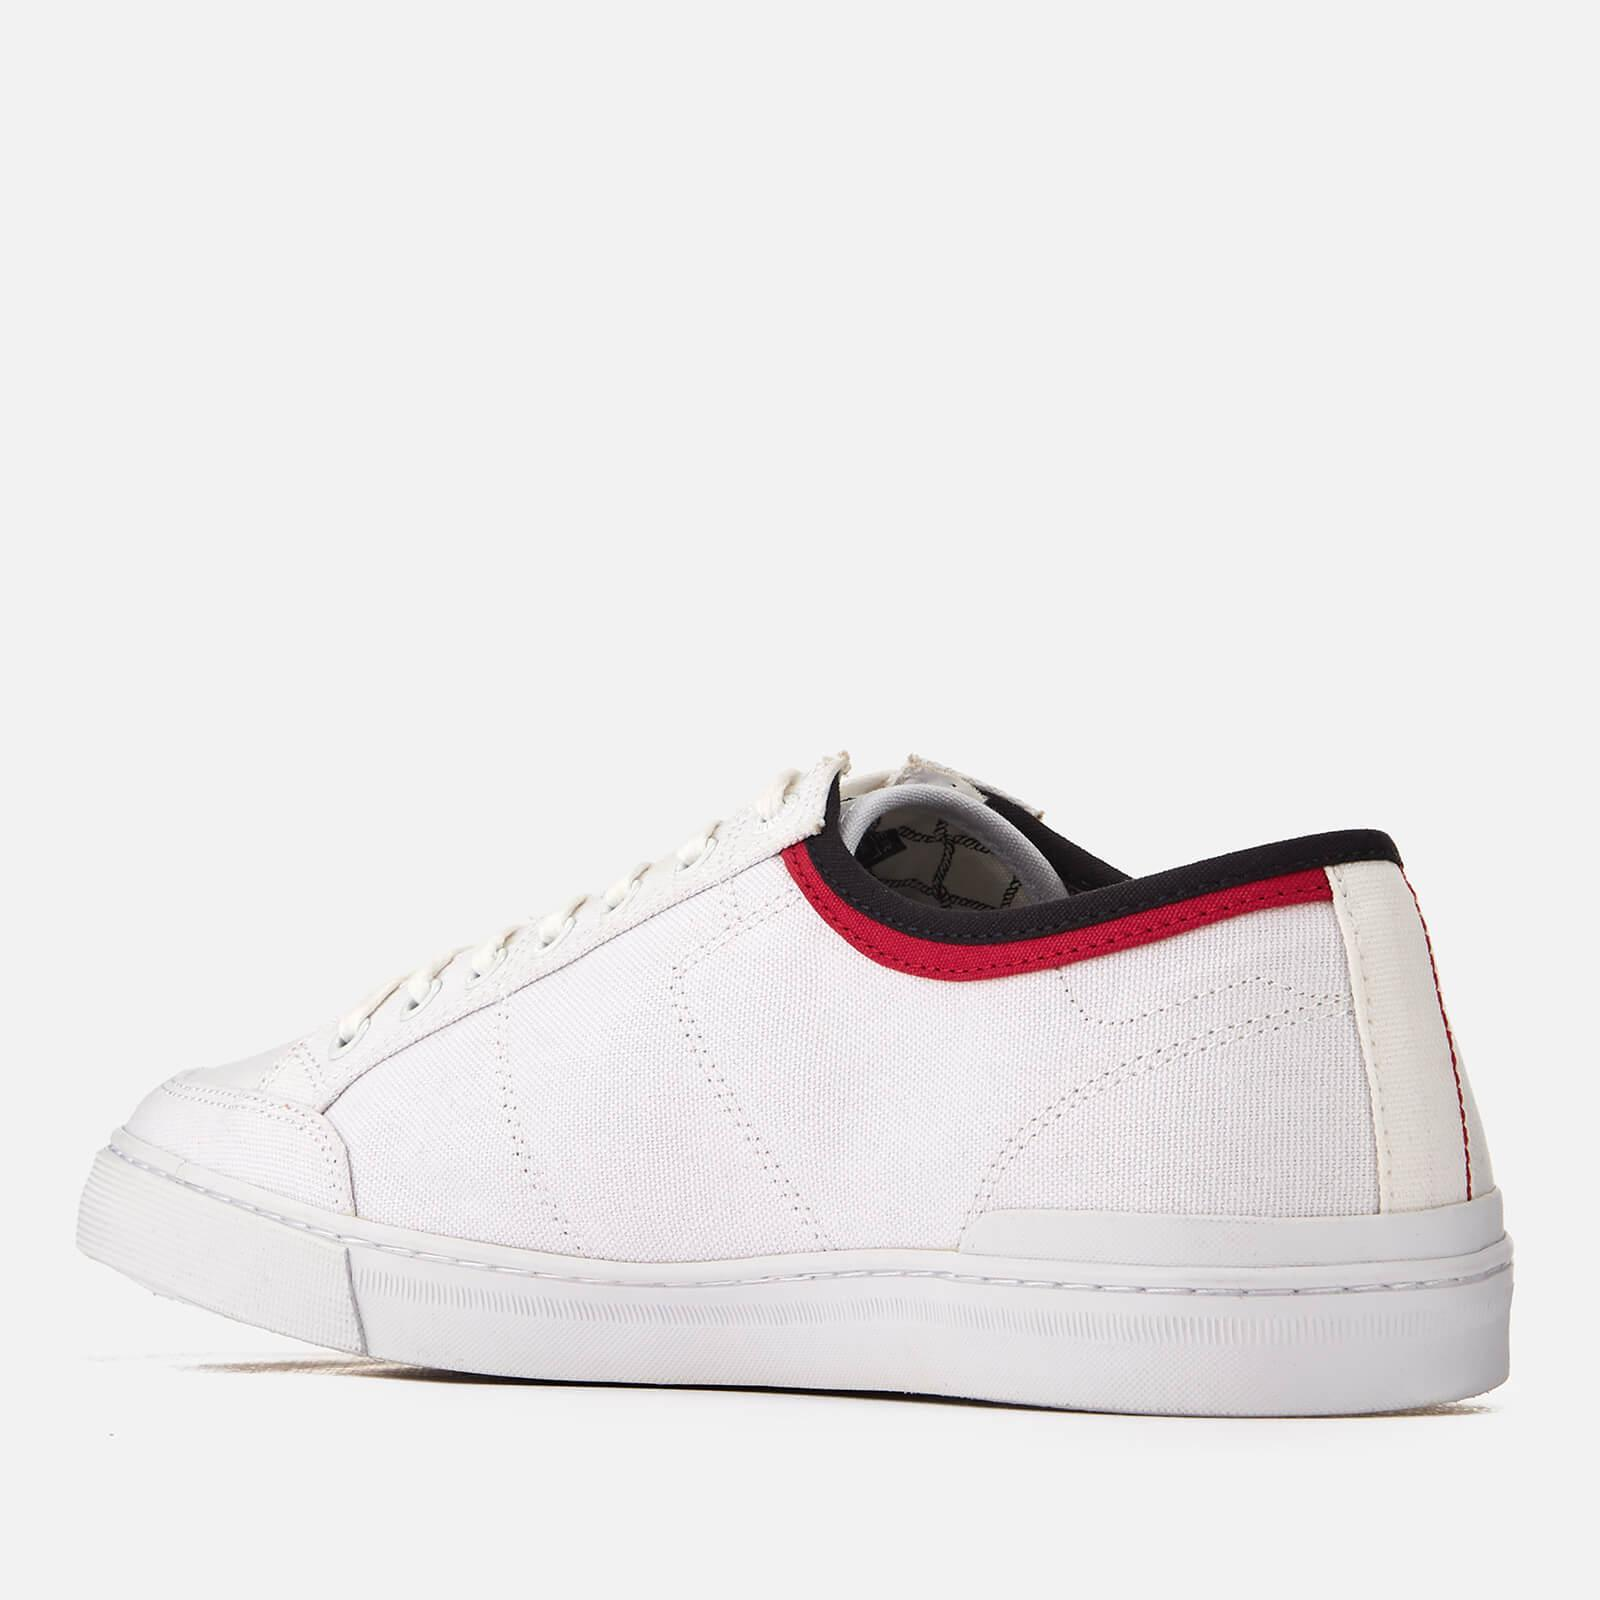 Core Corporate Canvas Trainers in Navy - Midnight Tommy Hilfiger nzdhOTd